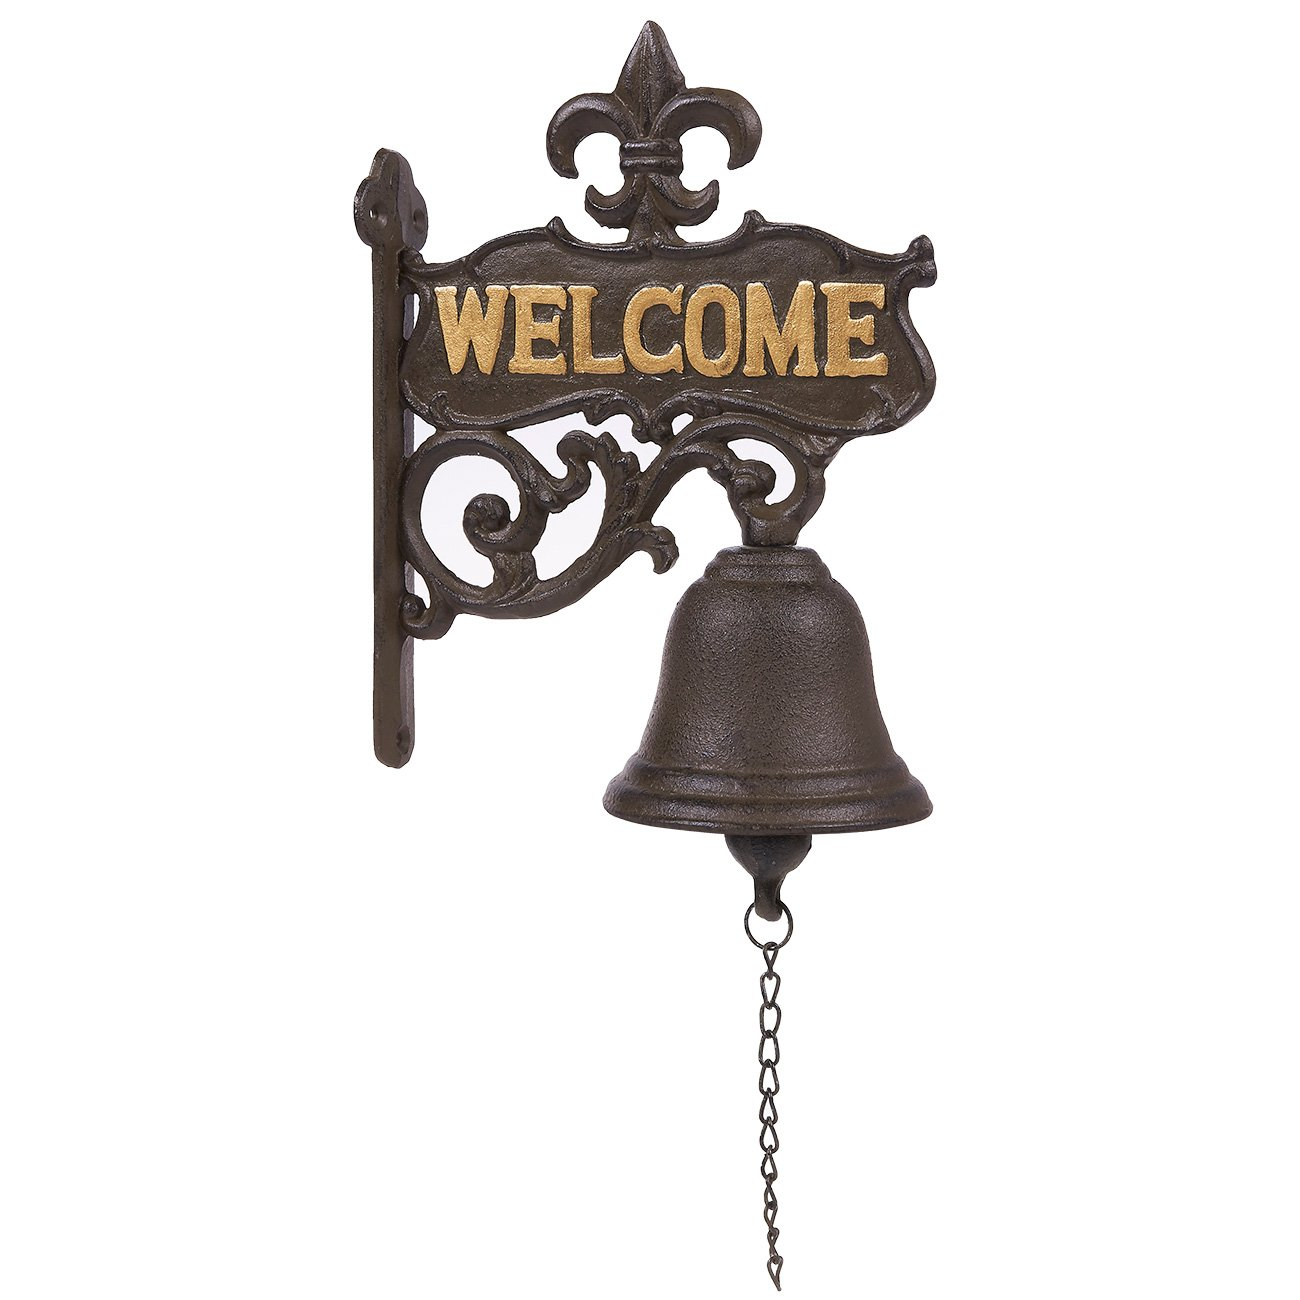 Juvale Cast Iron Bell - Welcome Entry Door Bell, Antique Doorbell Decoration, Front Door, Interior, Exterior Decor, Black - 6.7 x 8.9 x 0.8 inches by Juvale